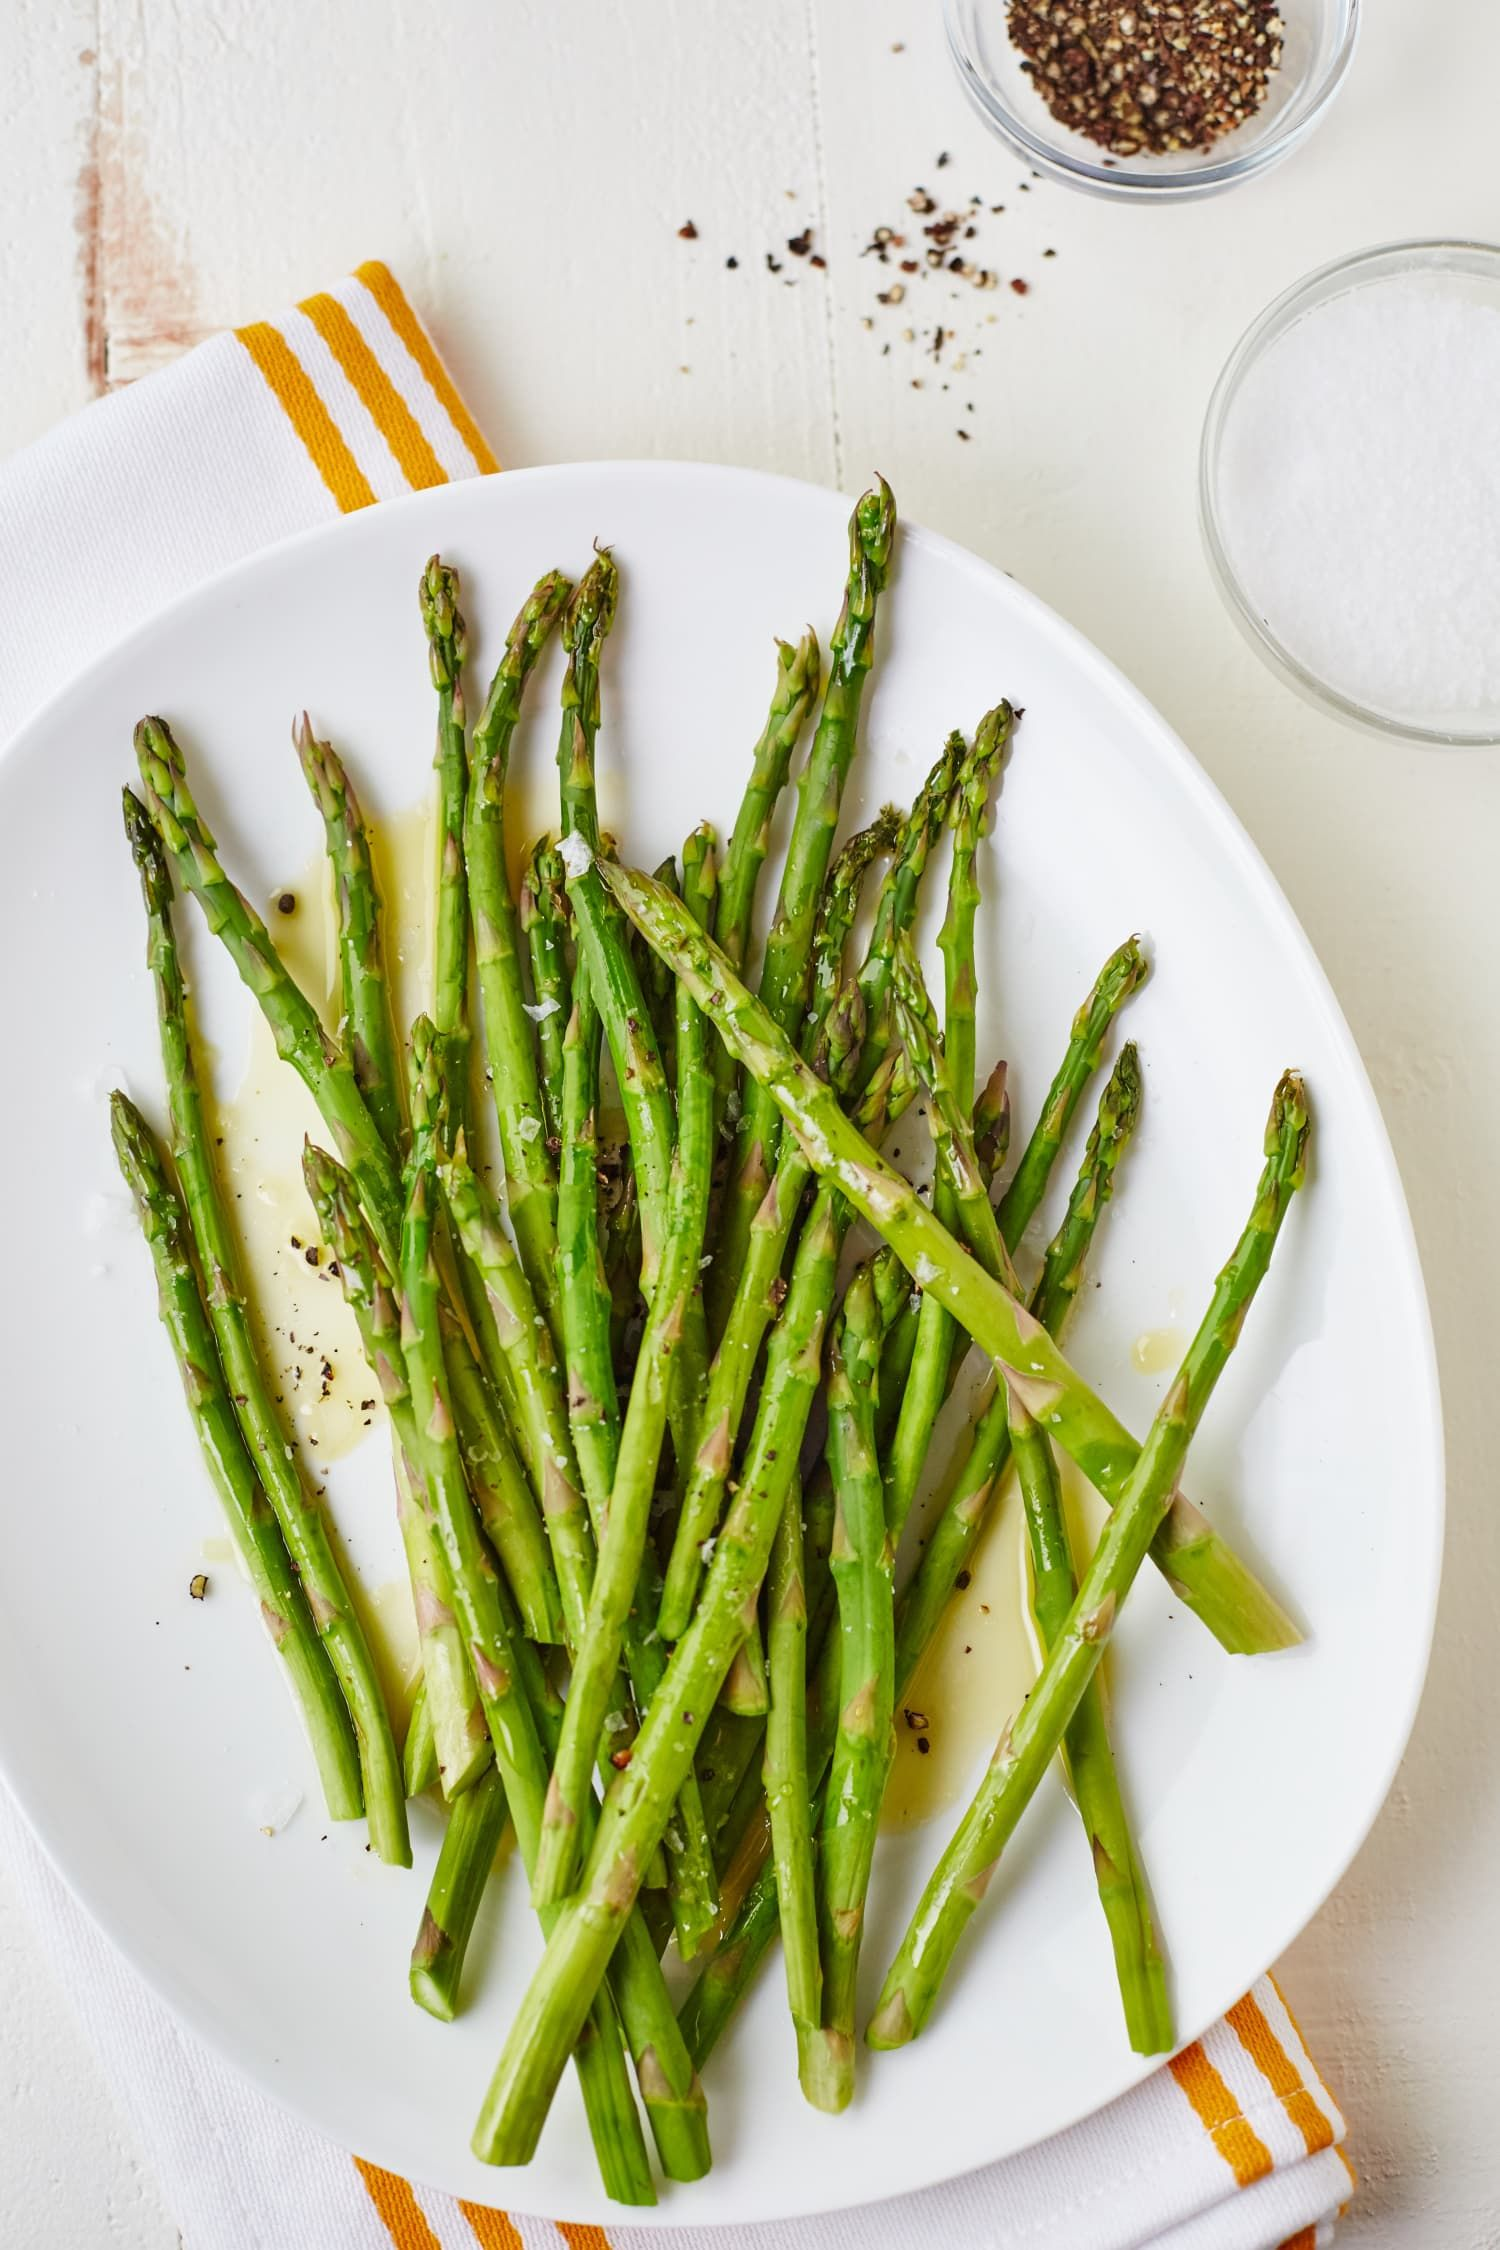 How To Steam Asparagus In The Microwave Recipe Asparagus Recipes Healthy How To Cook Asparagus Steamed Asparagus